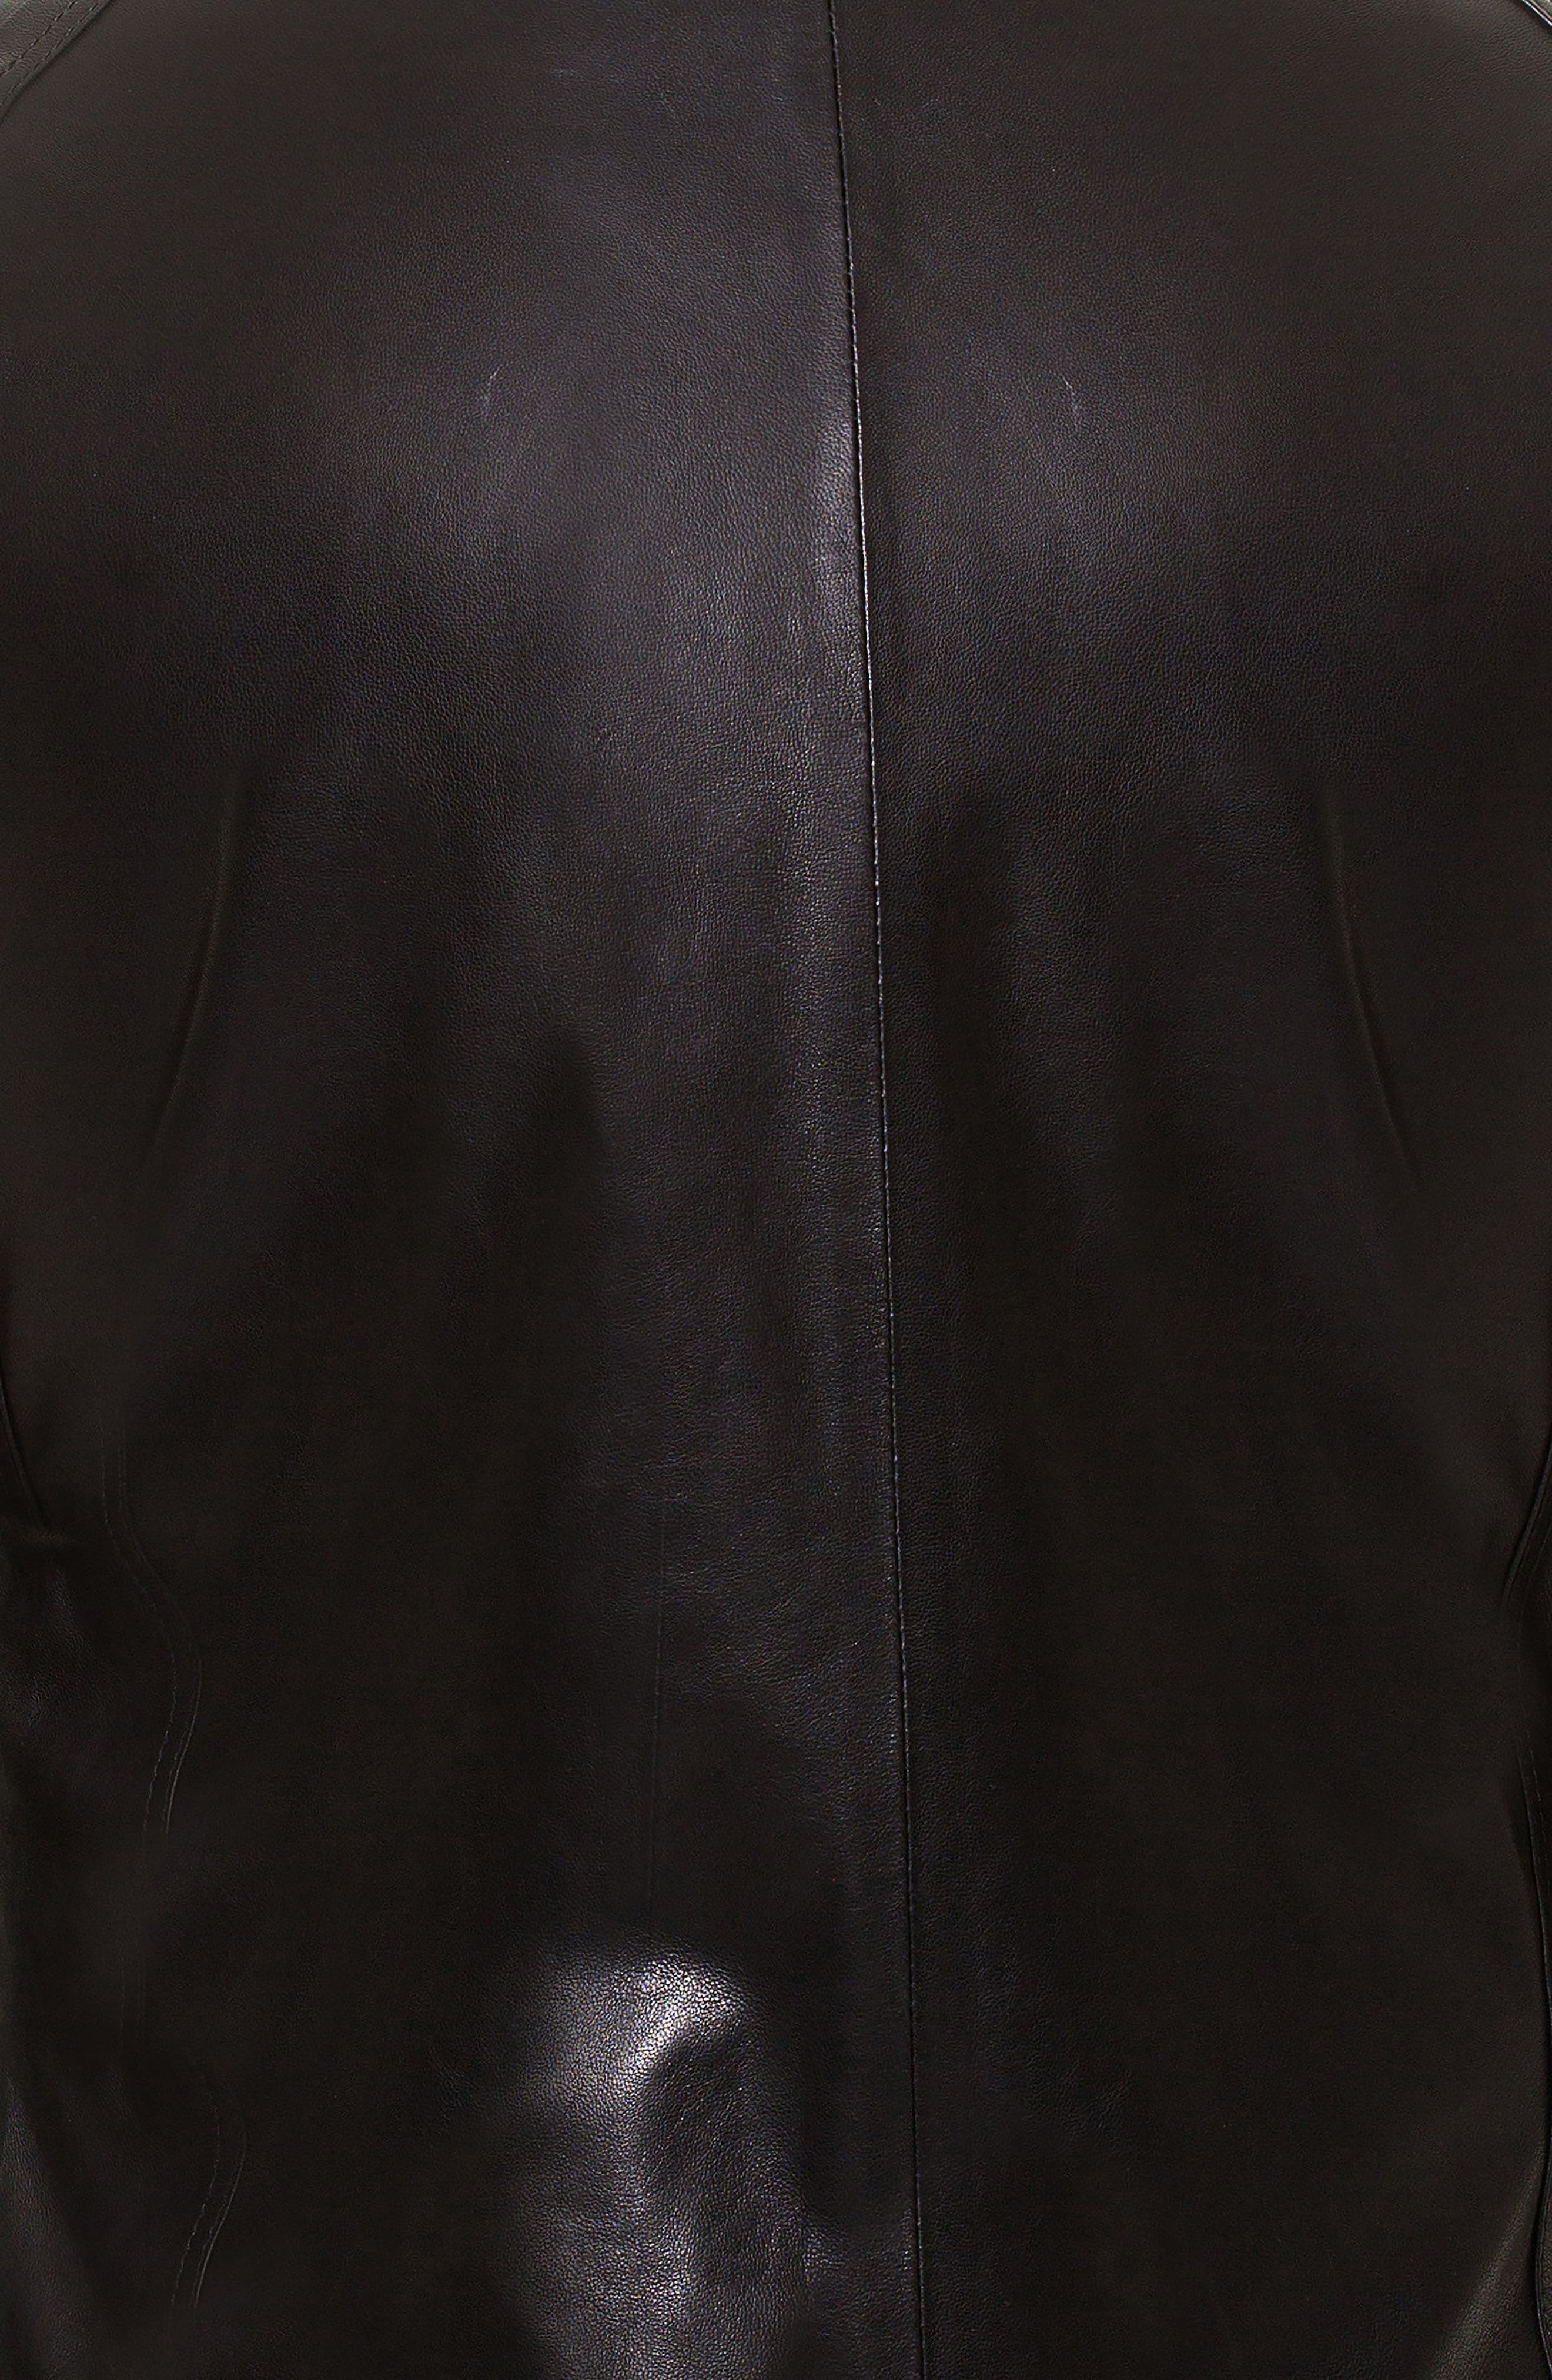 Collared Leather Jacket,                             Alternate thumbnail 3, color,                             Black